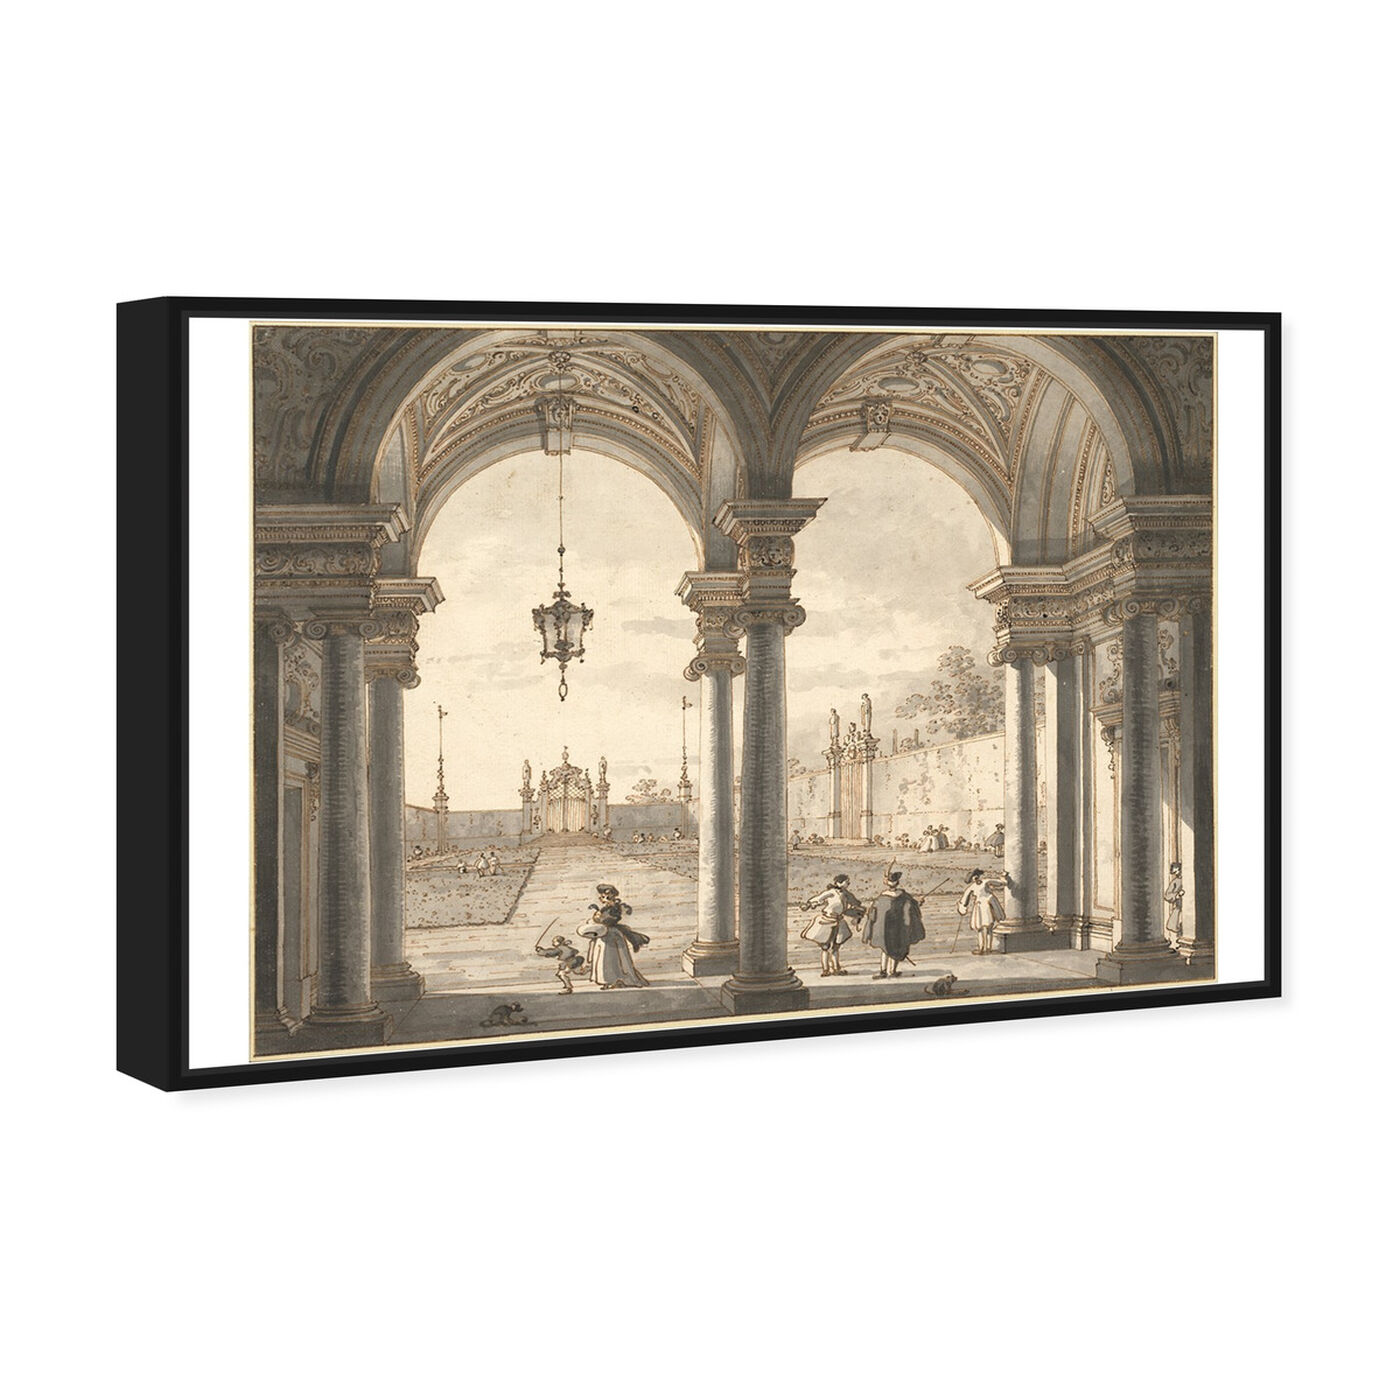 Angled view of Canaletto - View Through a Baroque Colonnade featuring classic and figurative and classic art.